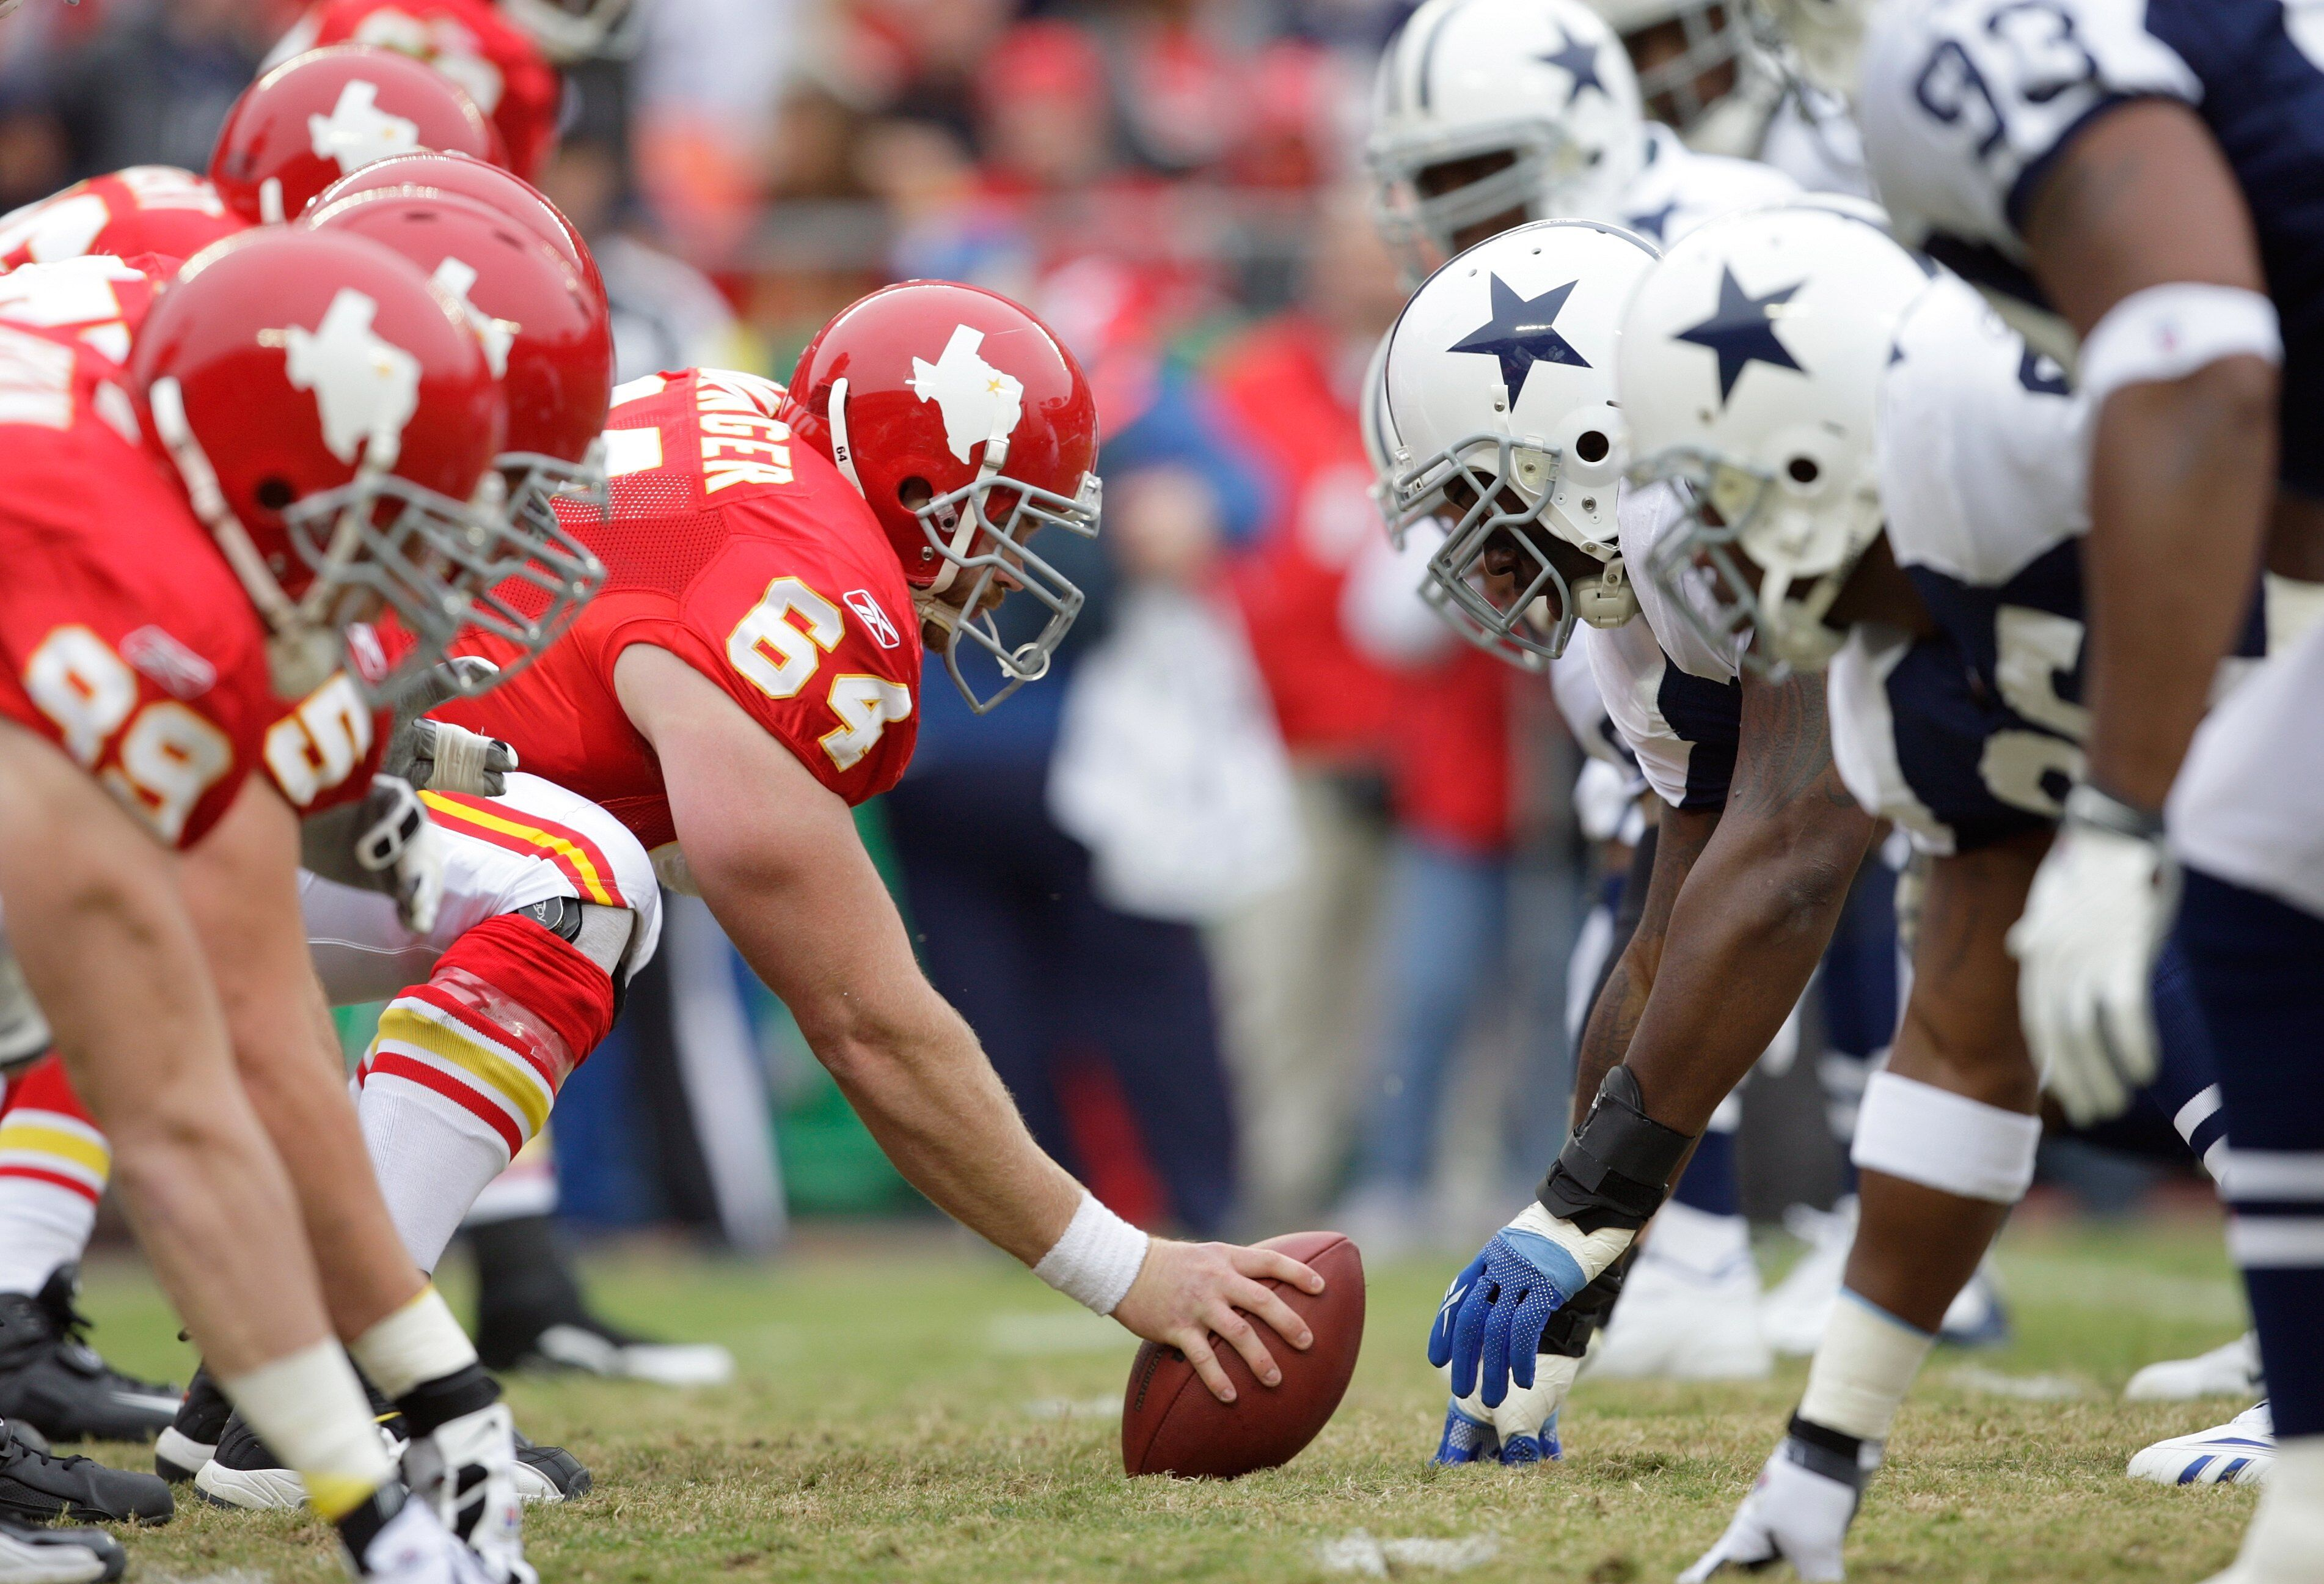 Dallas Cowboys, Kansas City Chiefs rivalry: An amazing stat!